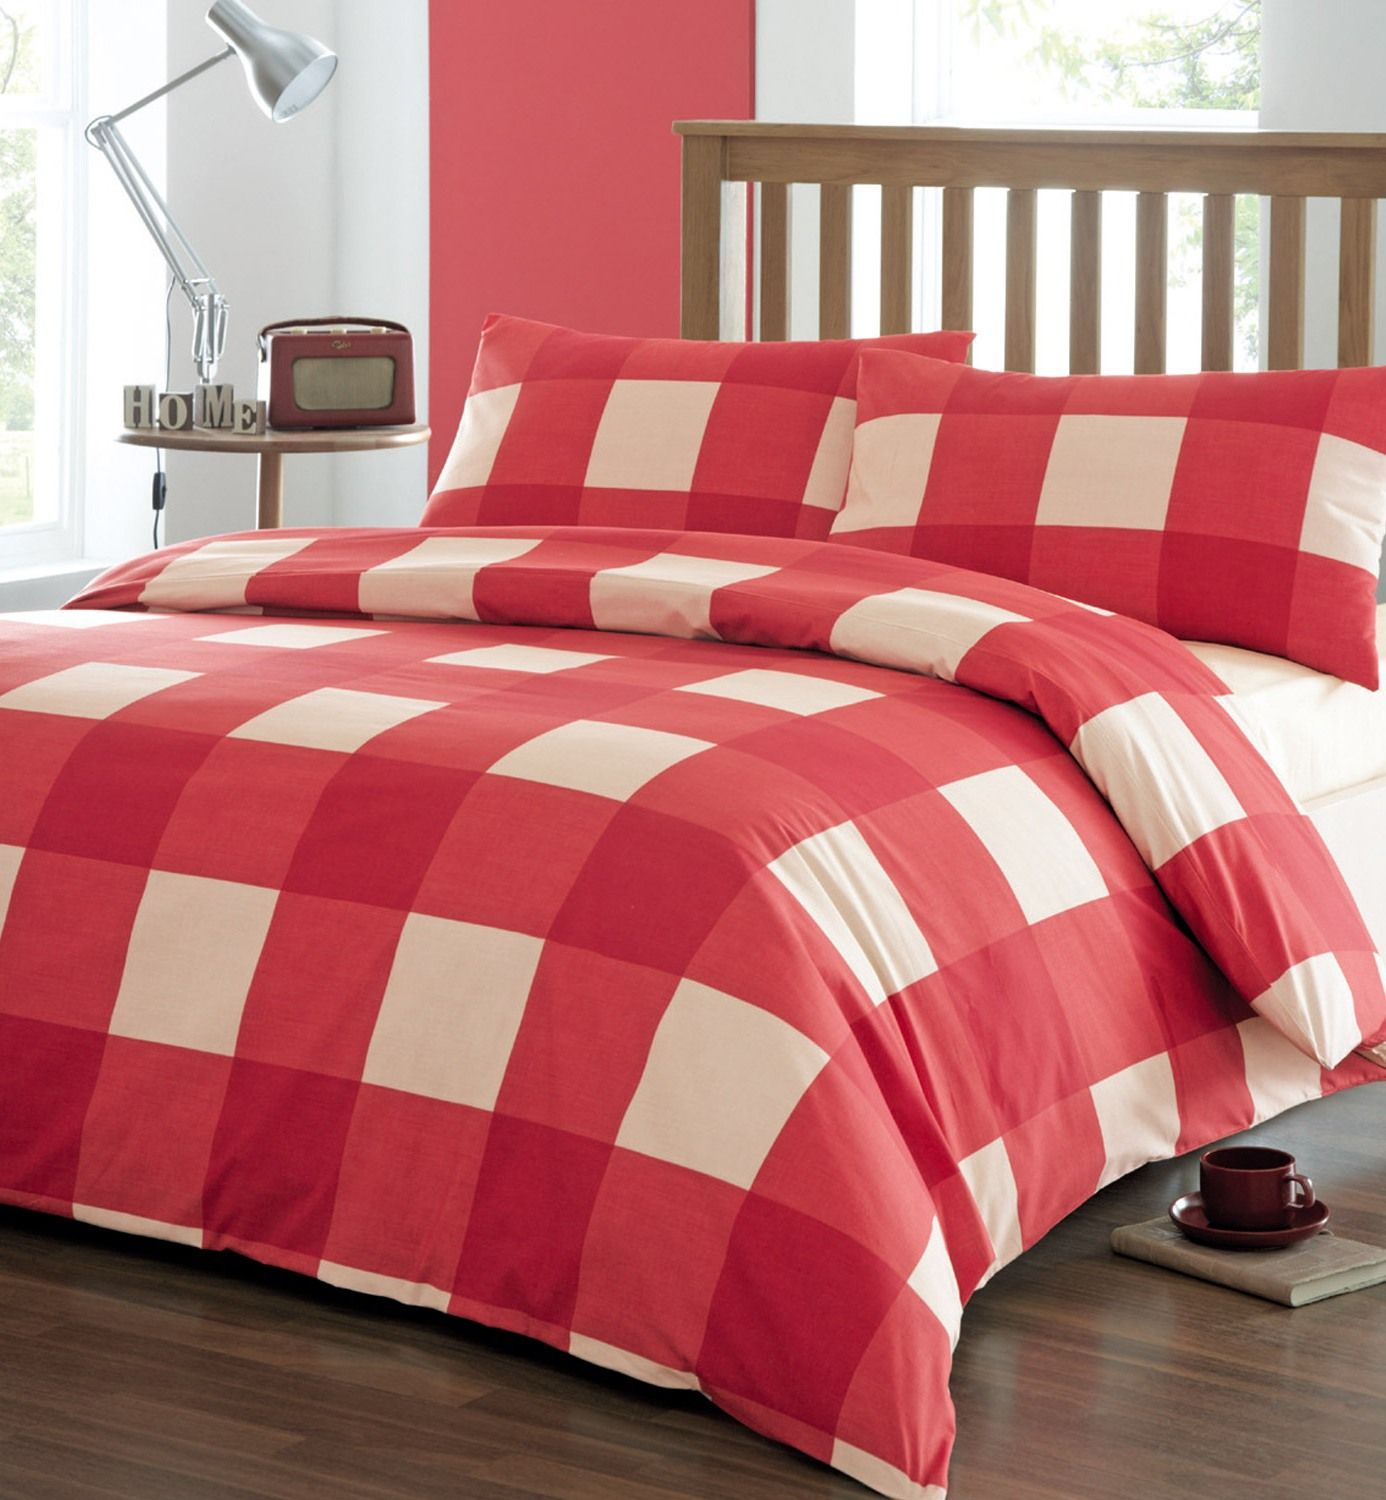 Bedroom. Captivating White And Red Duvet Covers On Wooden